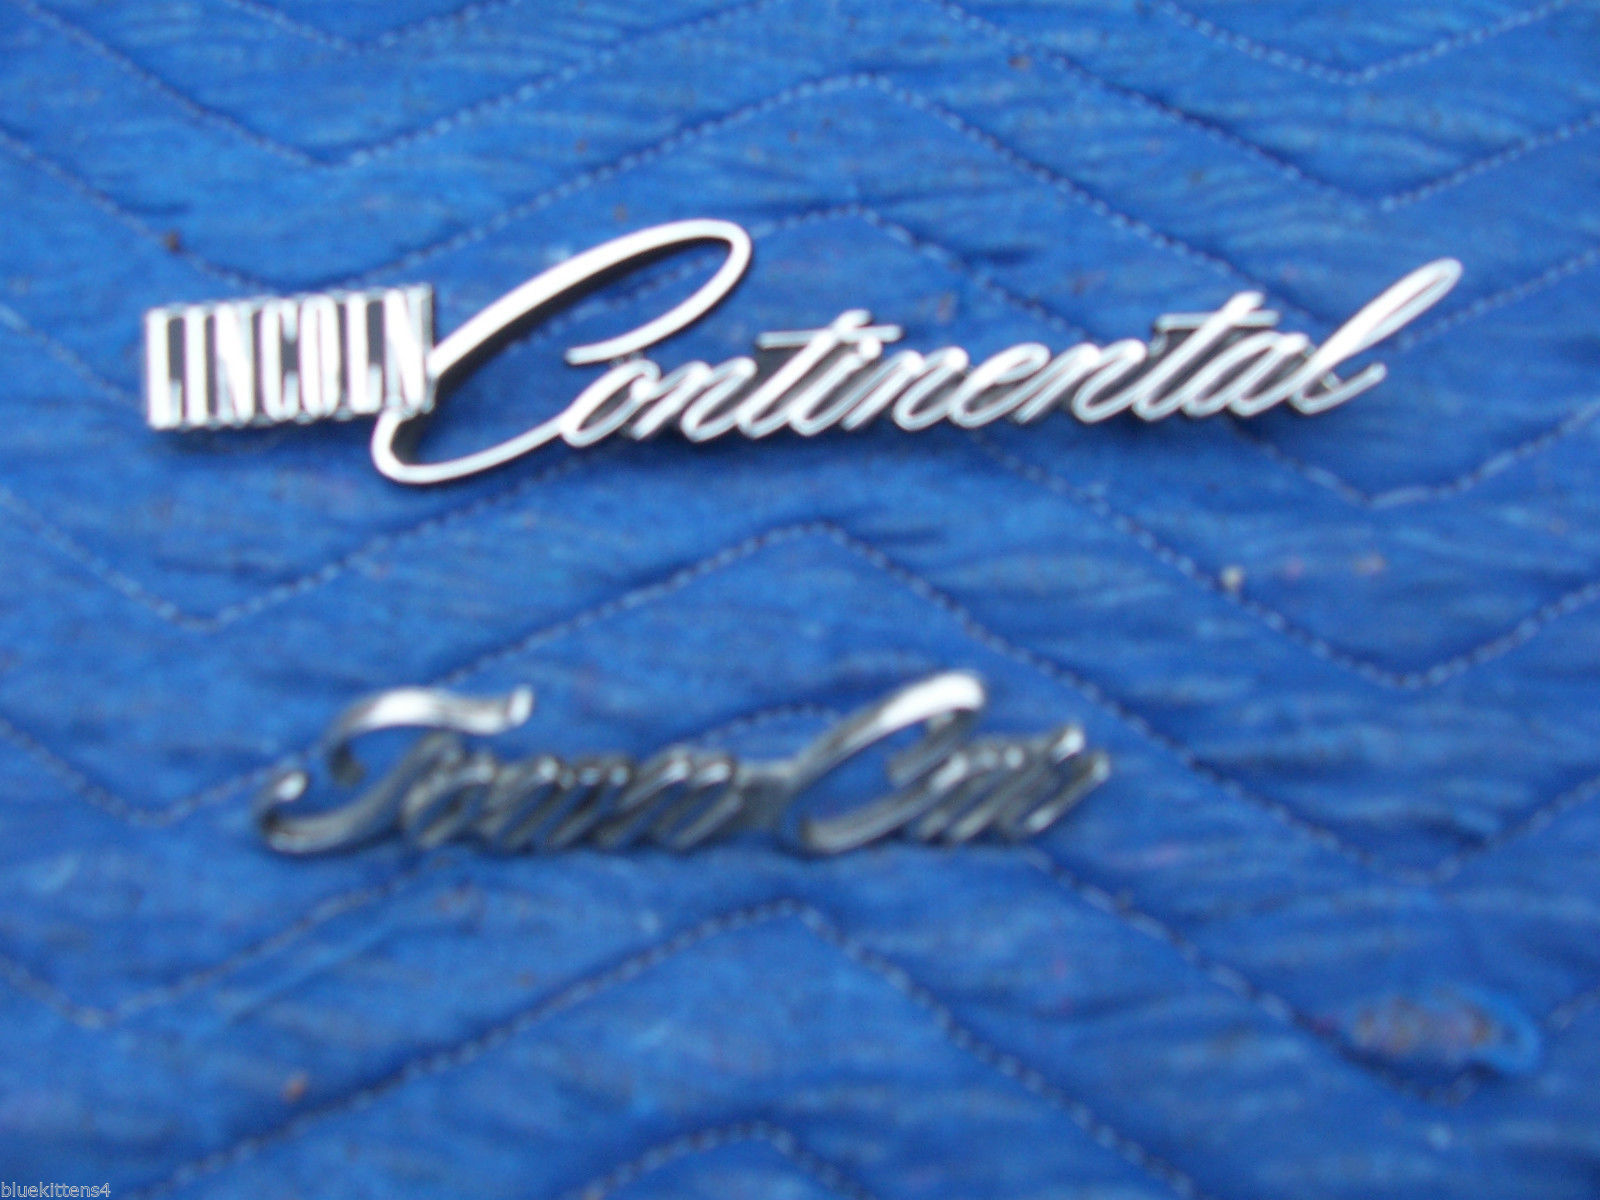 1978 1979 CONTINENTAL TOWNCAR FENDER TRIM EMBLEM ORNAMENT OEM USED LINCOLN PART image 1